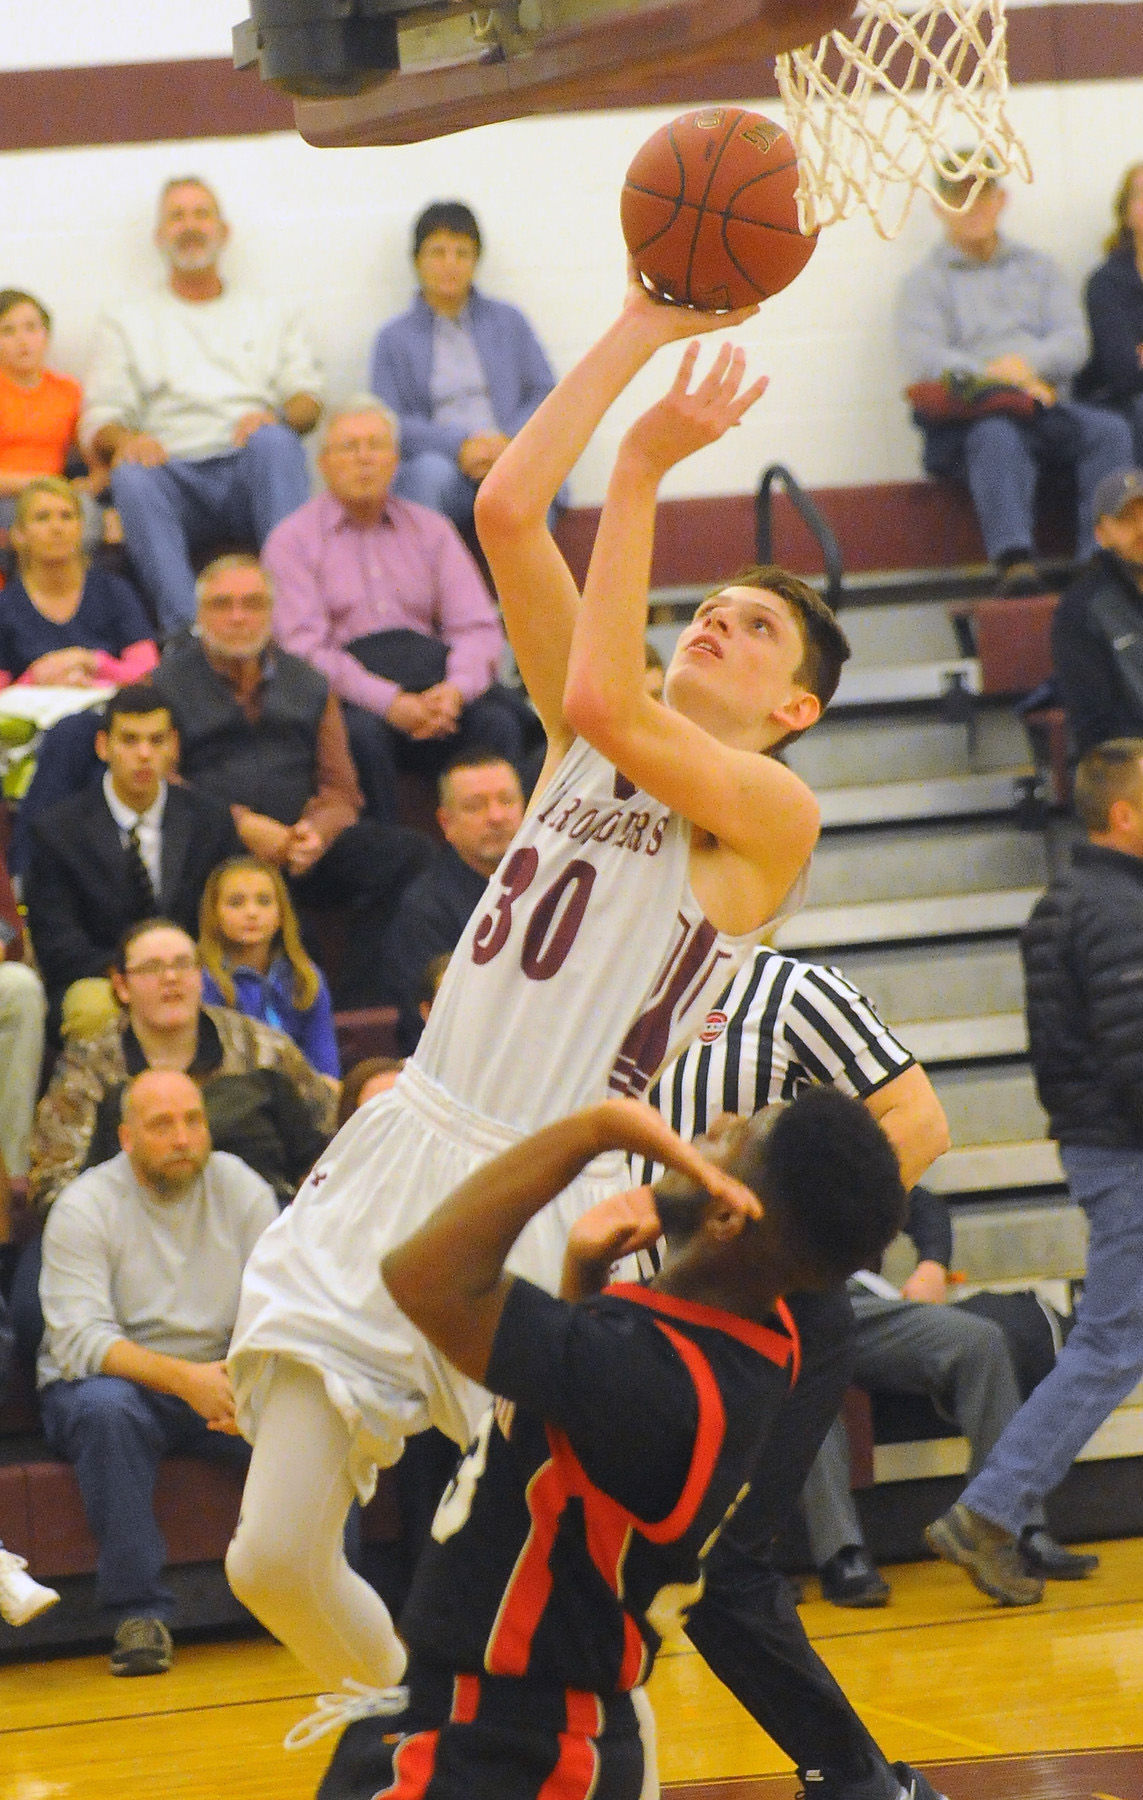 Whitehall vs. Hartford Boys Basketball